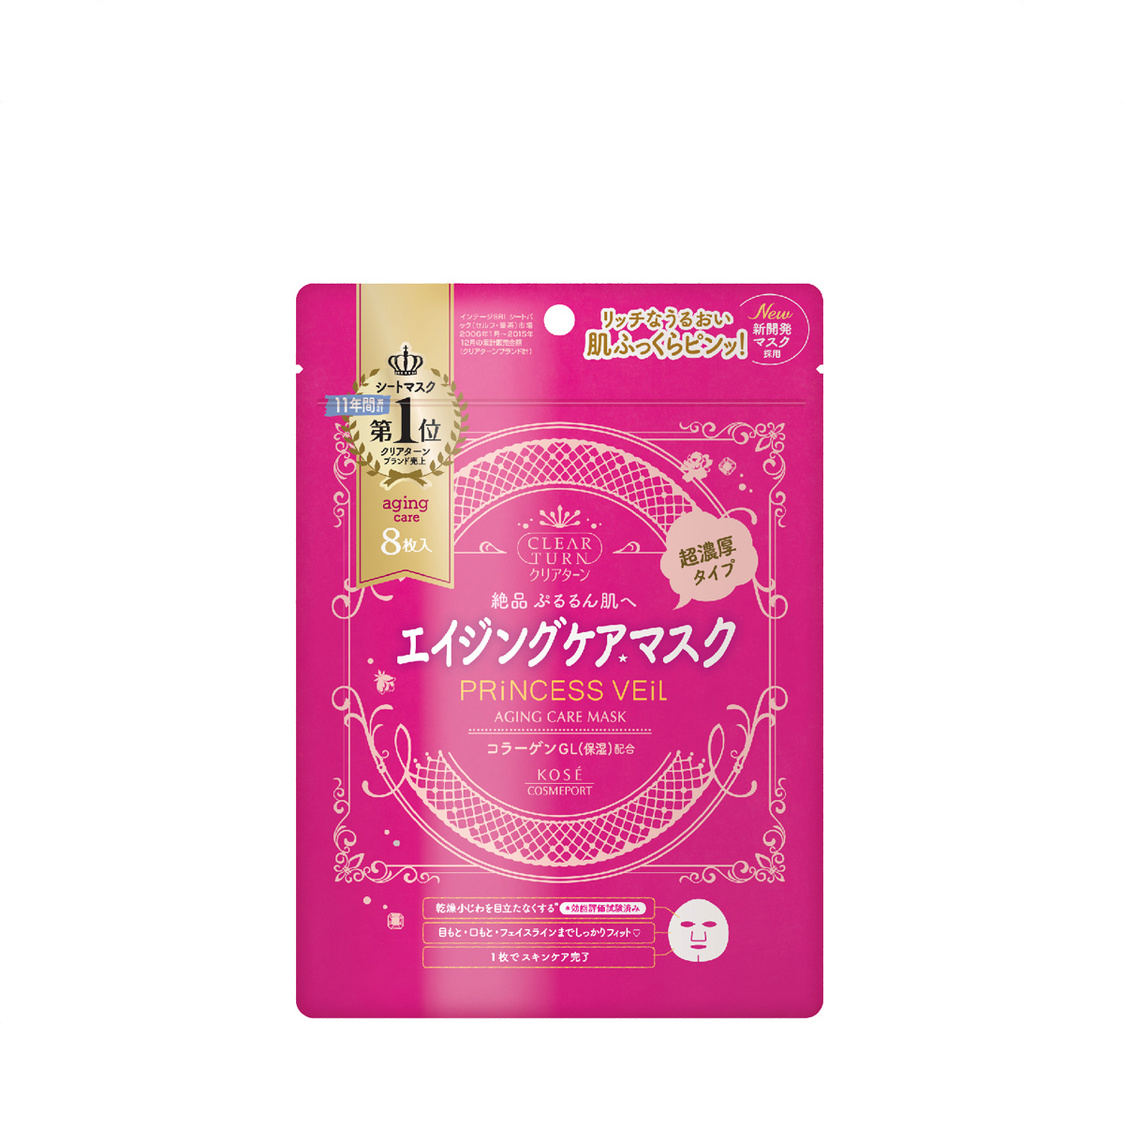 Kose Cosmeport Princess Veil Aging Care Mask 8s